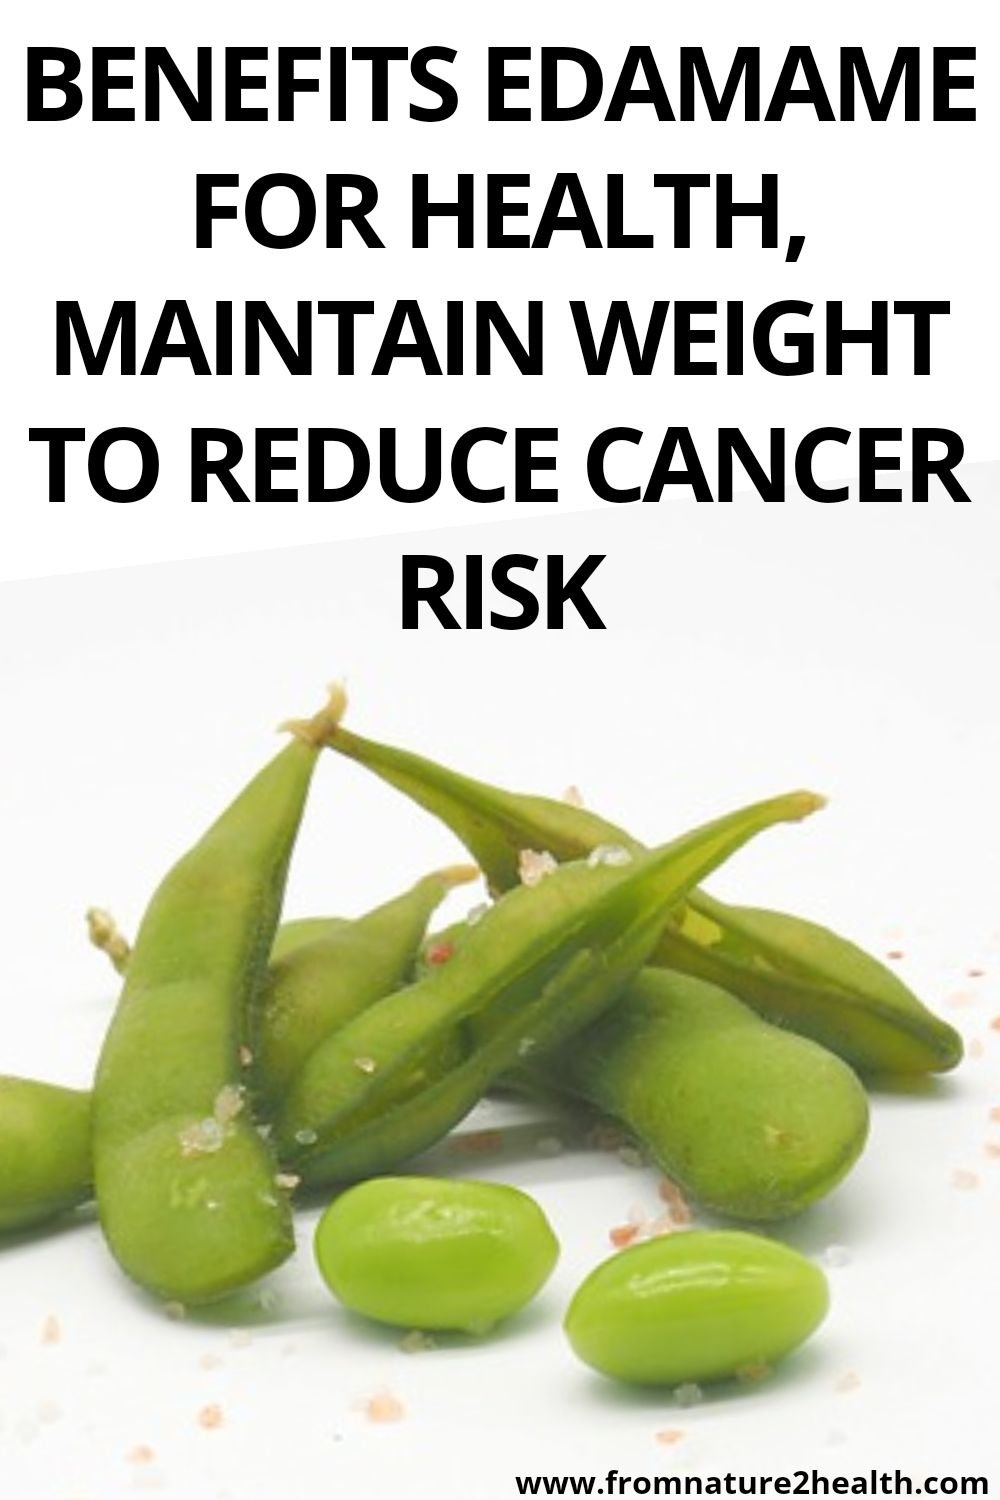 Benefits Edamame for Health, Maintain Weight to Reduce Cancer Risk